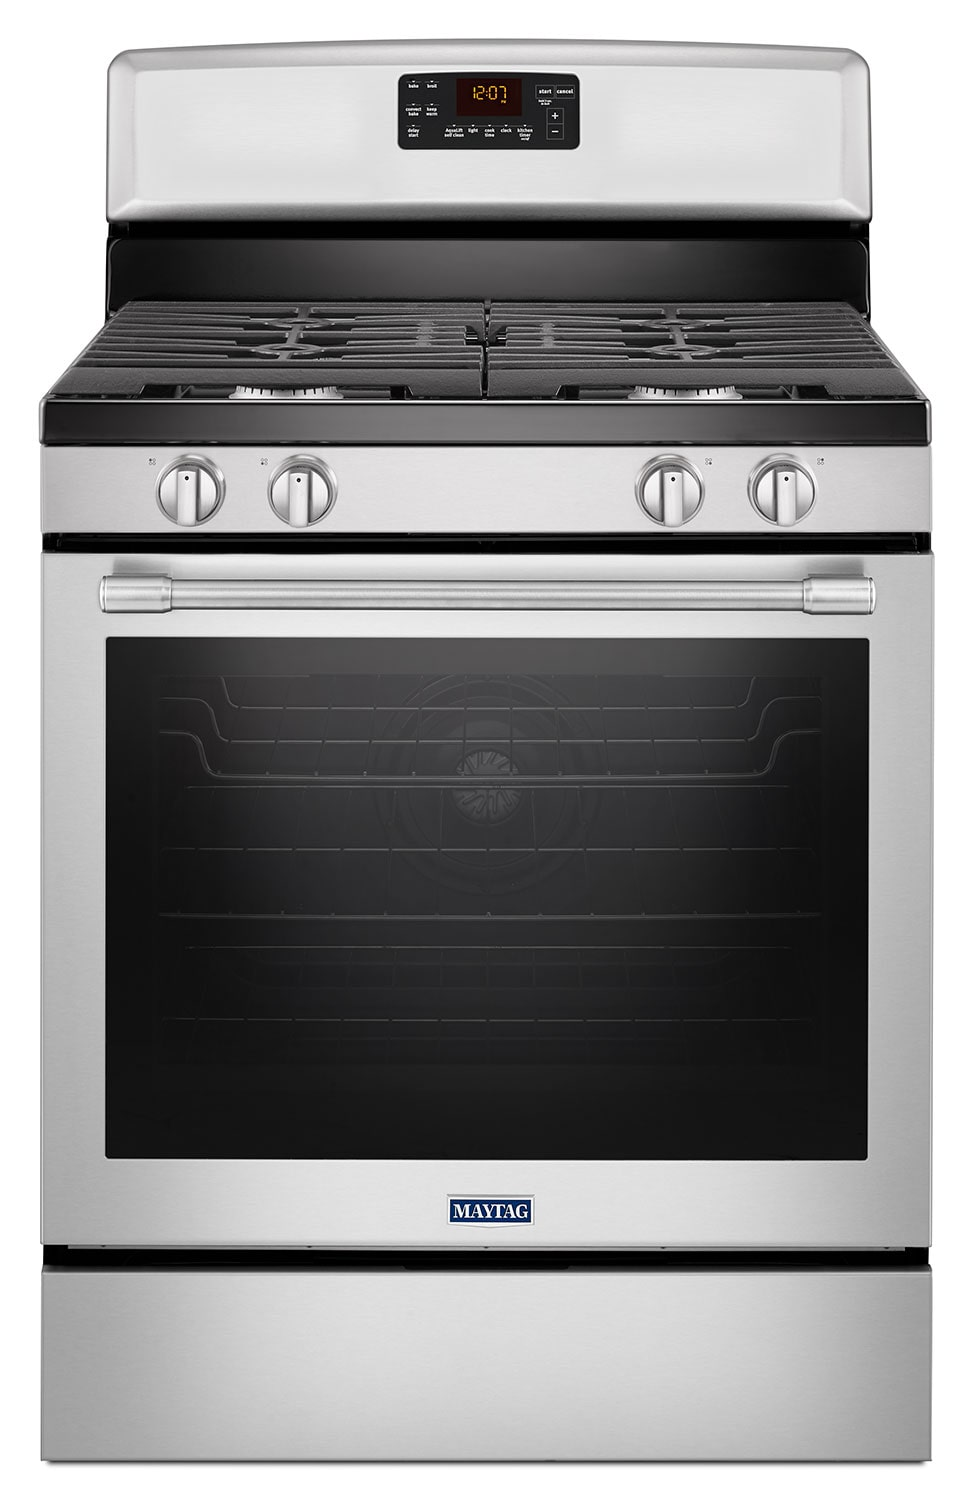 Maytag Stainless Steel Freestanding Gas Convection Range